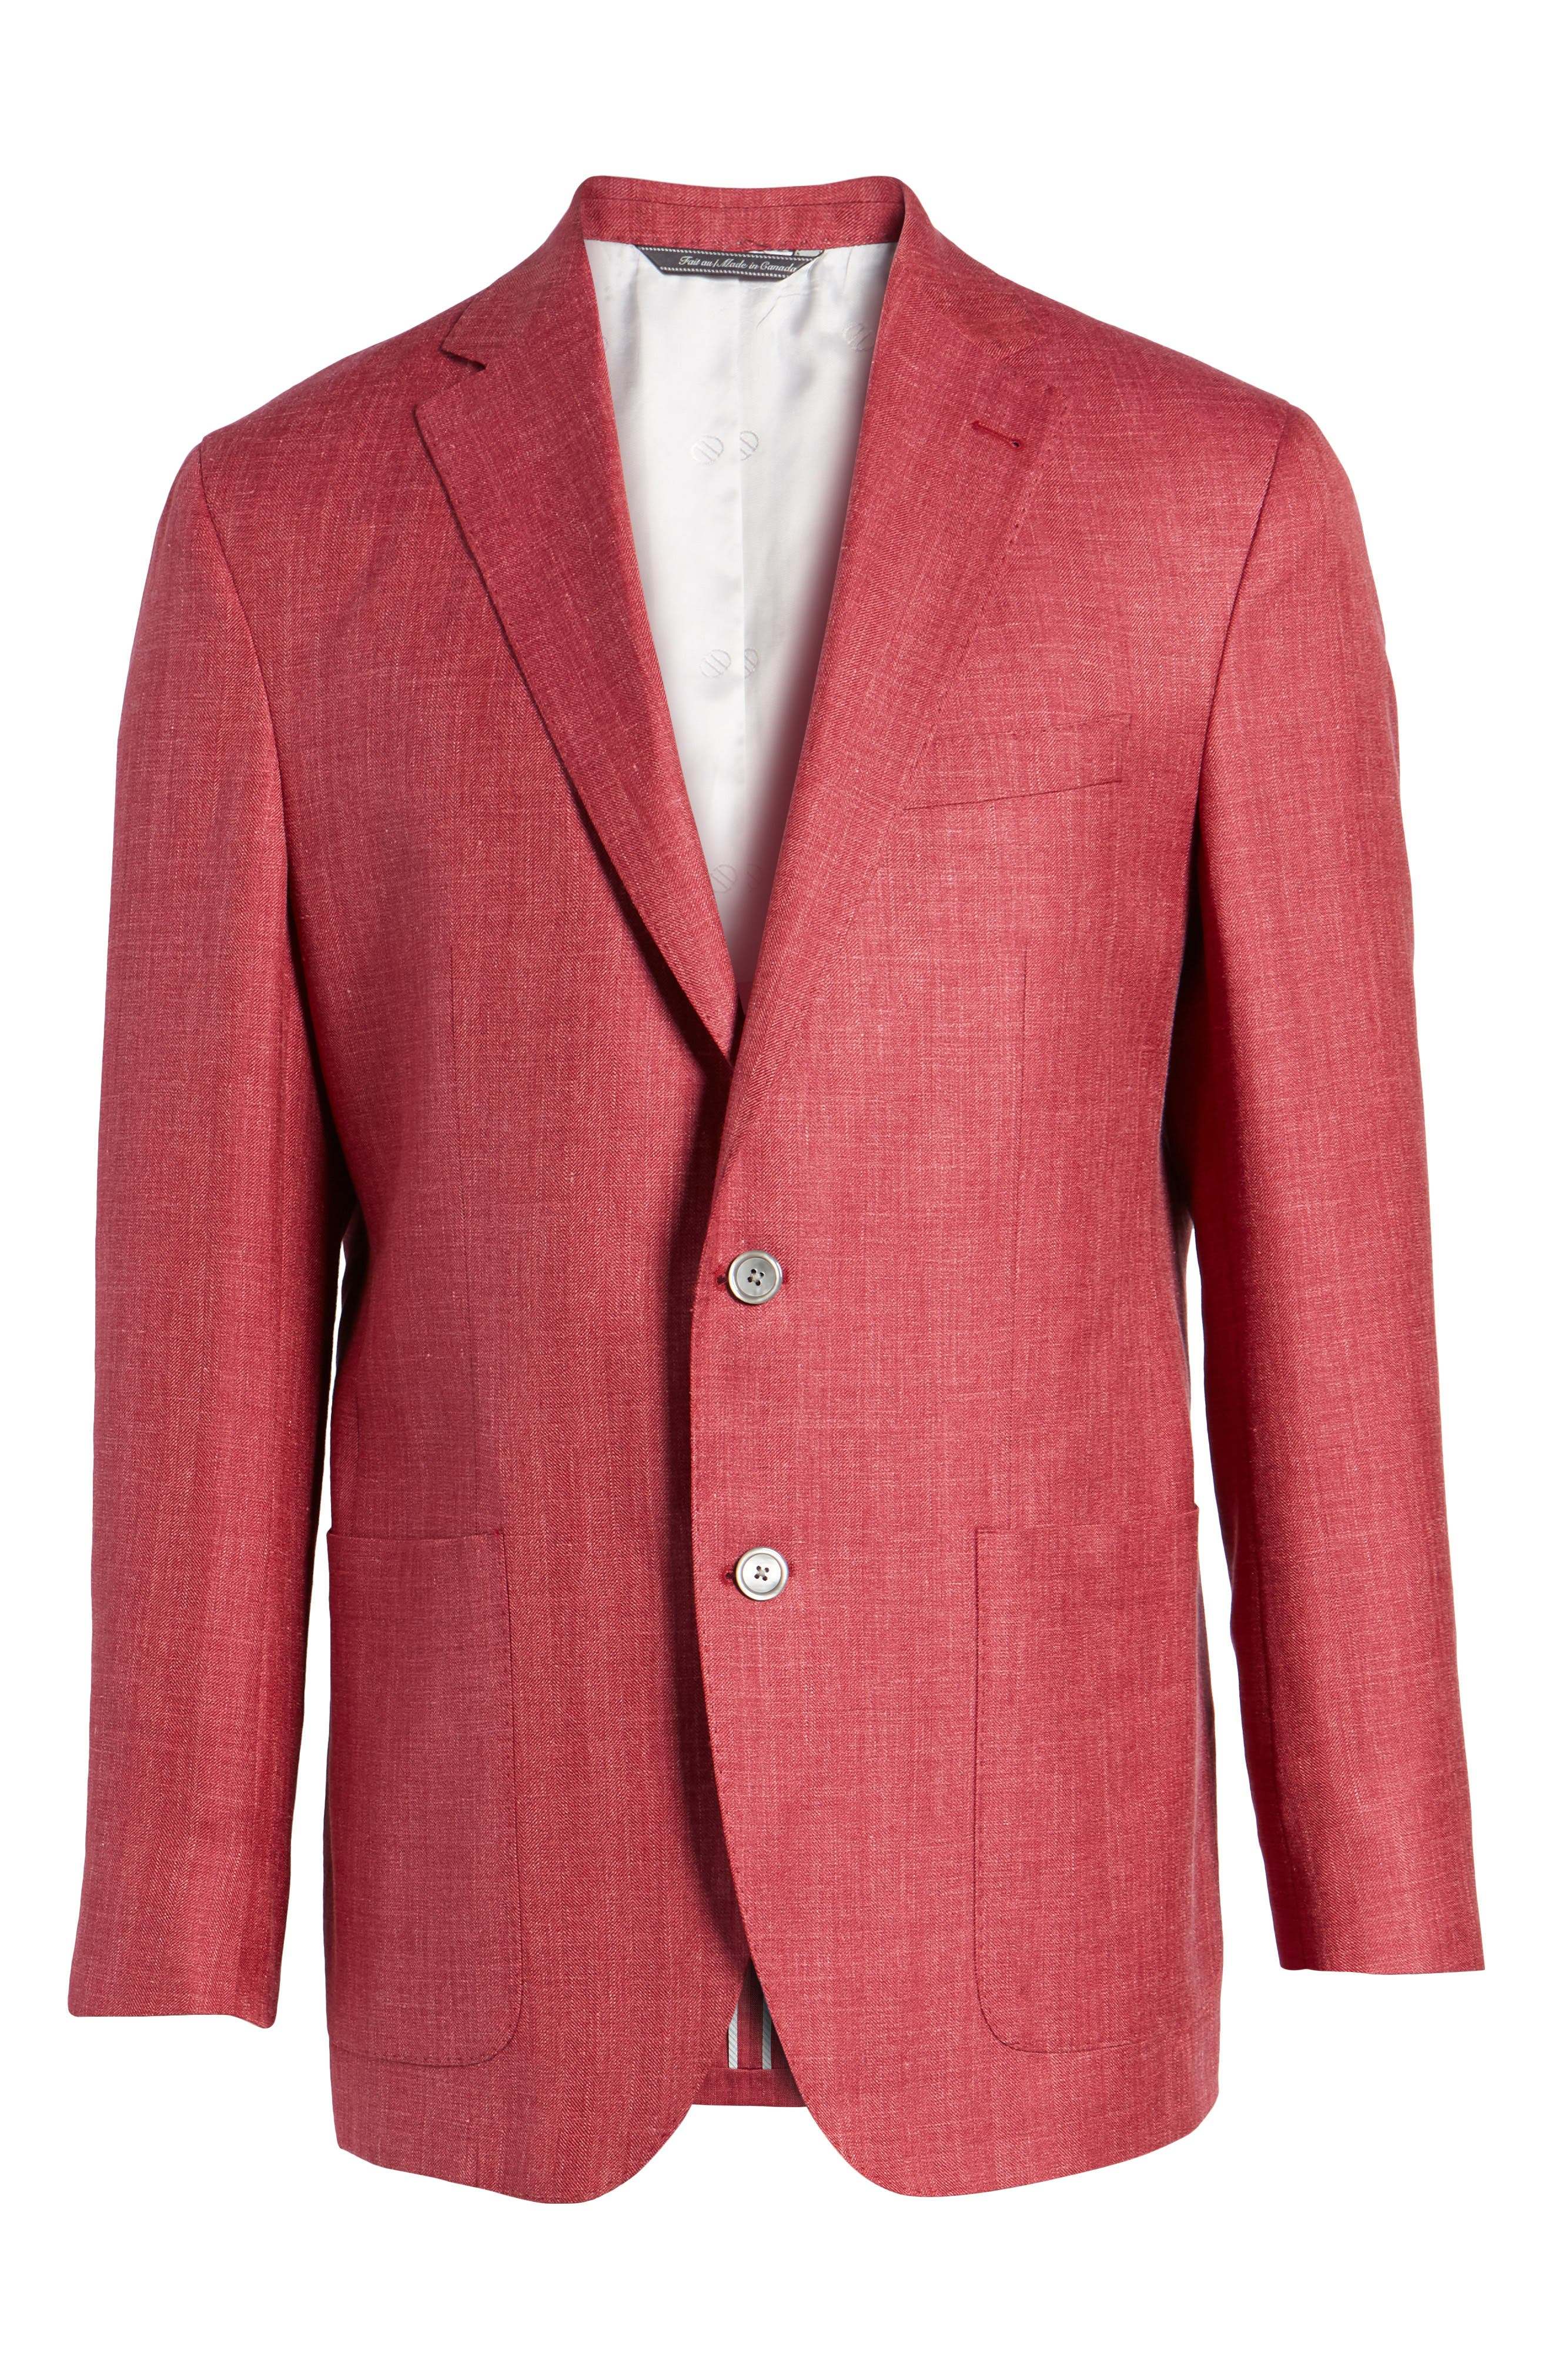 Aiden Classic Fit Wool Blend Blazer,                             Alternate thumbnail 6, color,                             Red